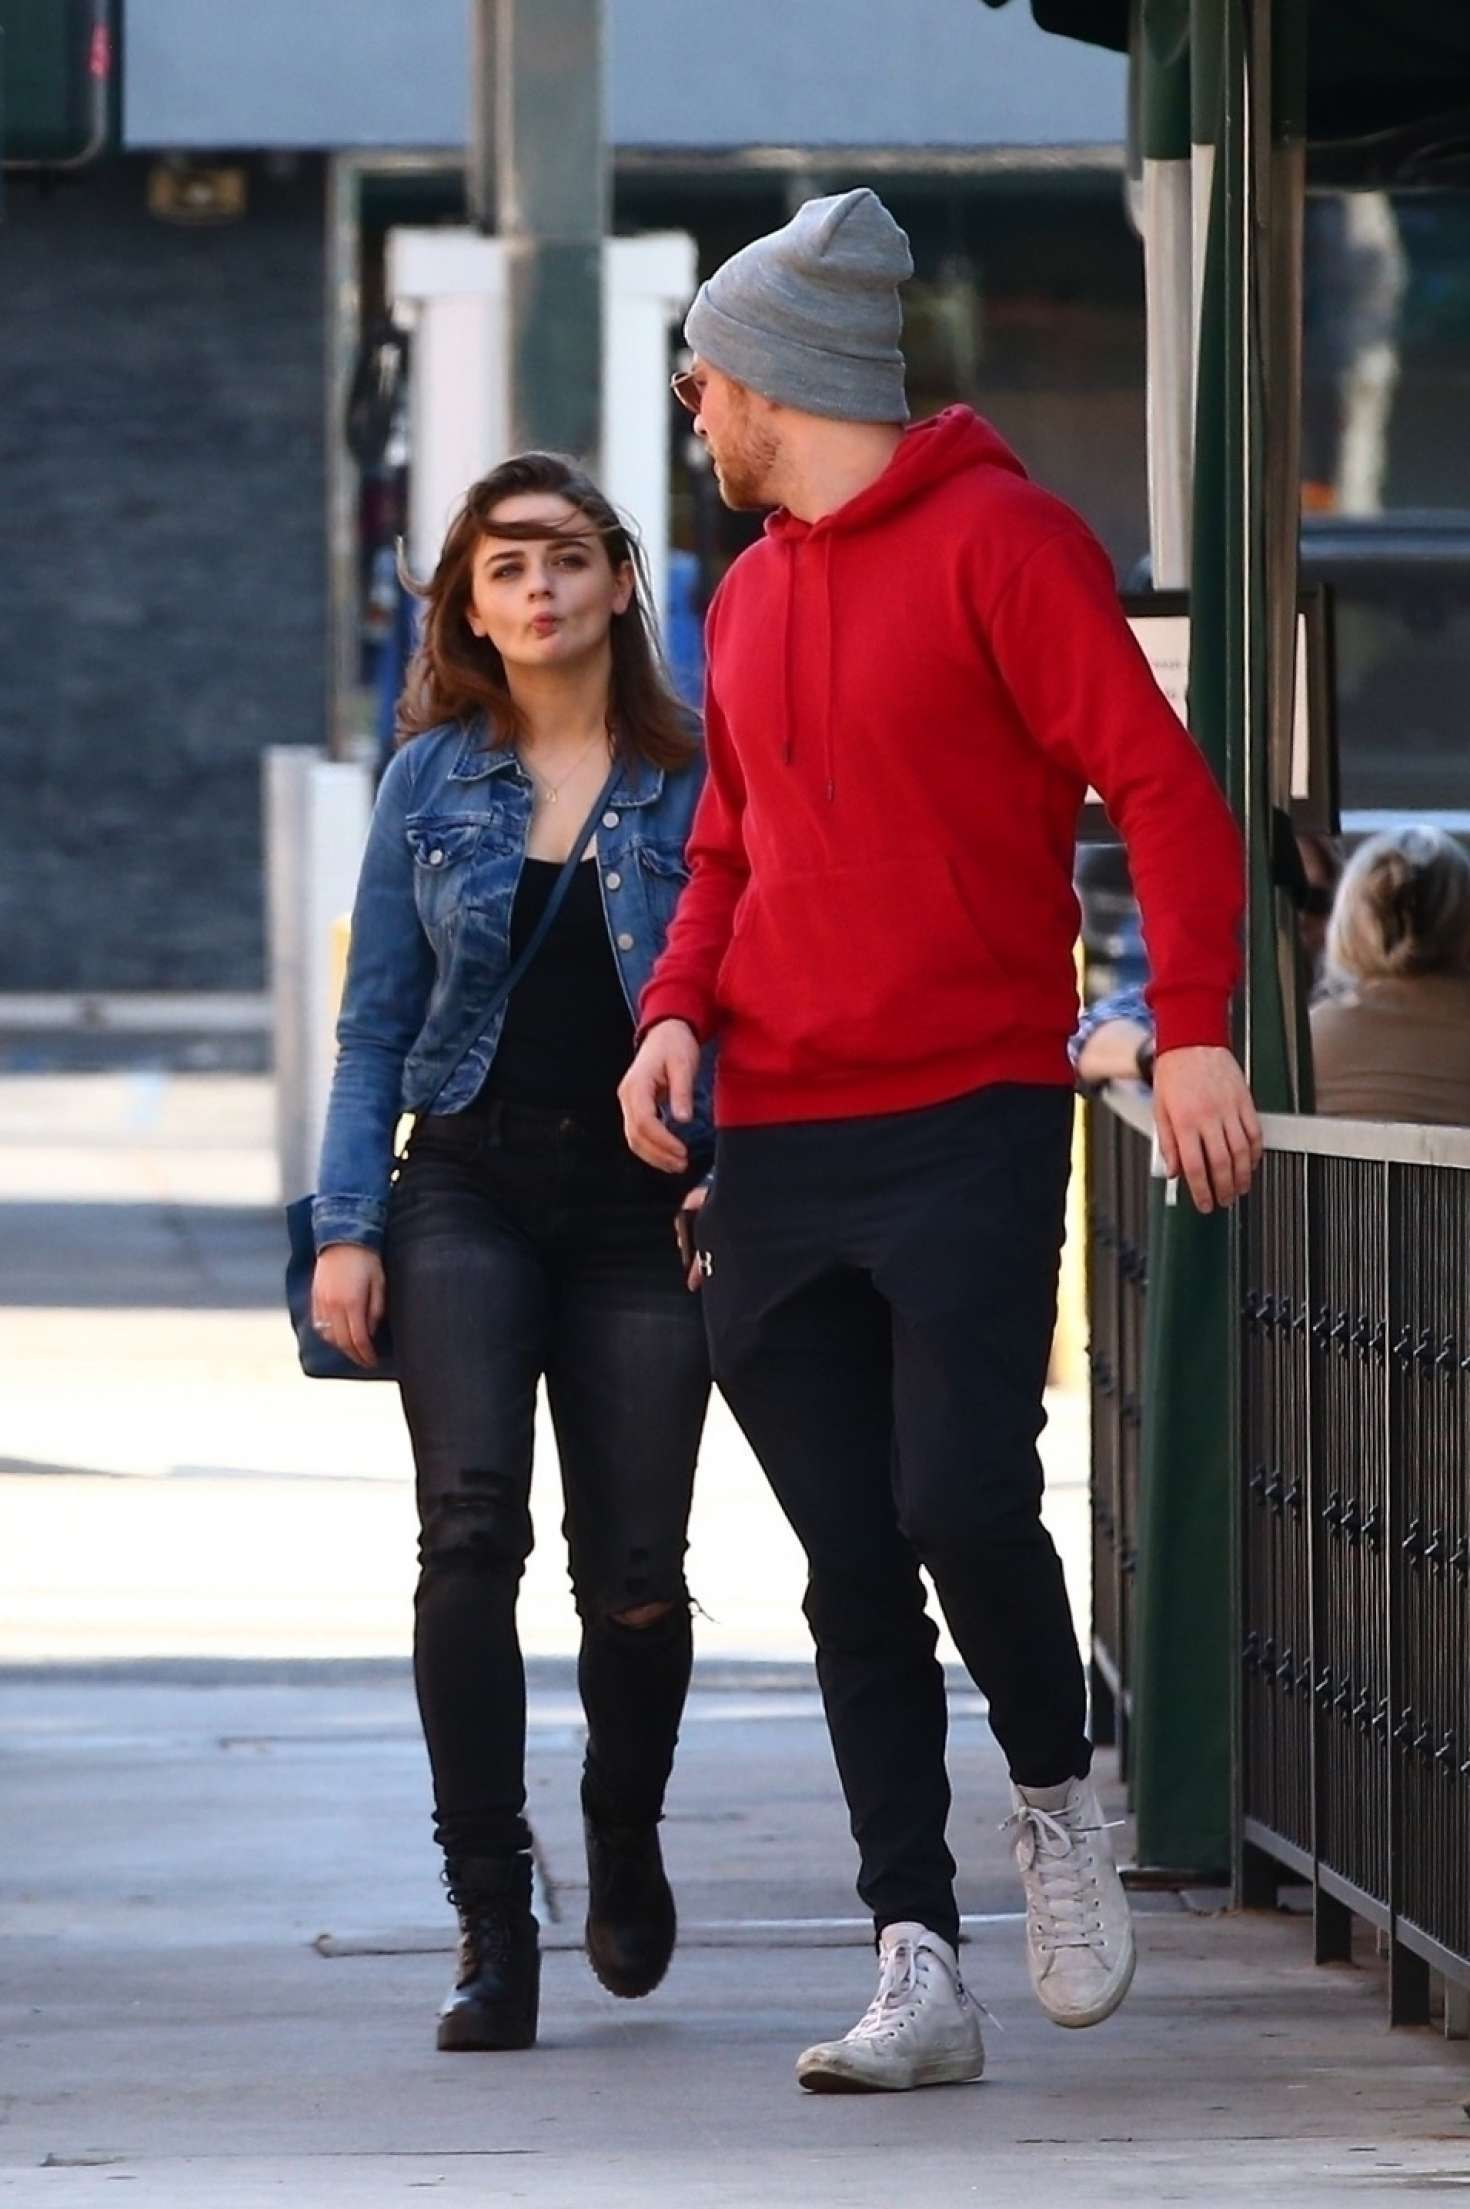 New Sienna 2019 >> Joey King with her boyfriend at Hugo's in West Hollywood – GotCeleb